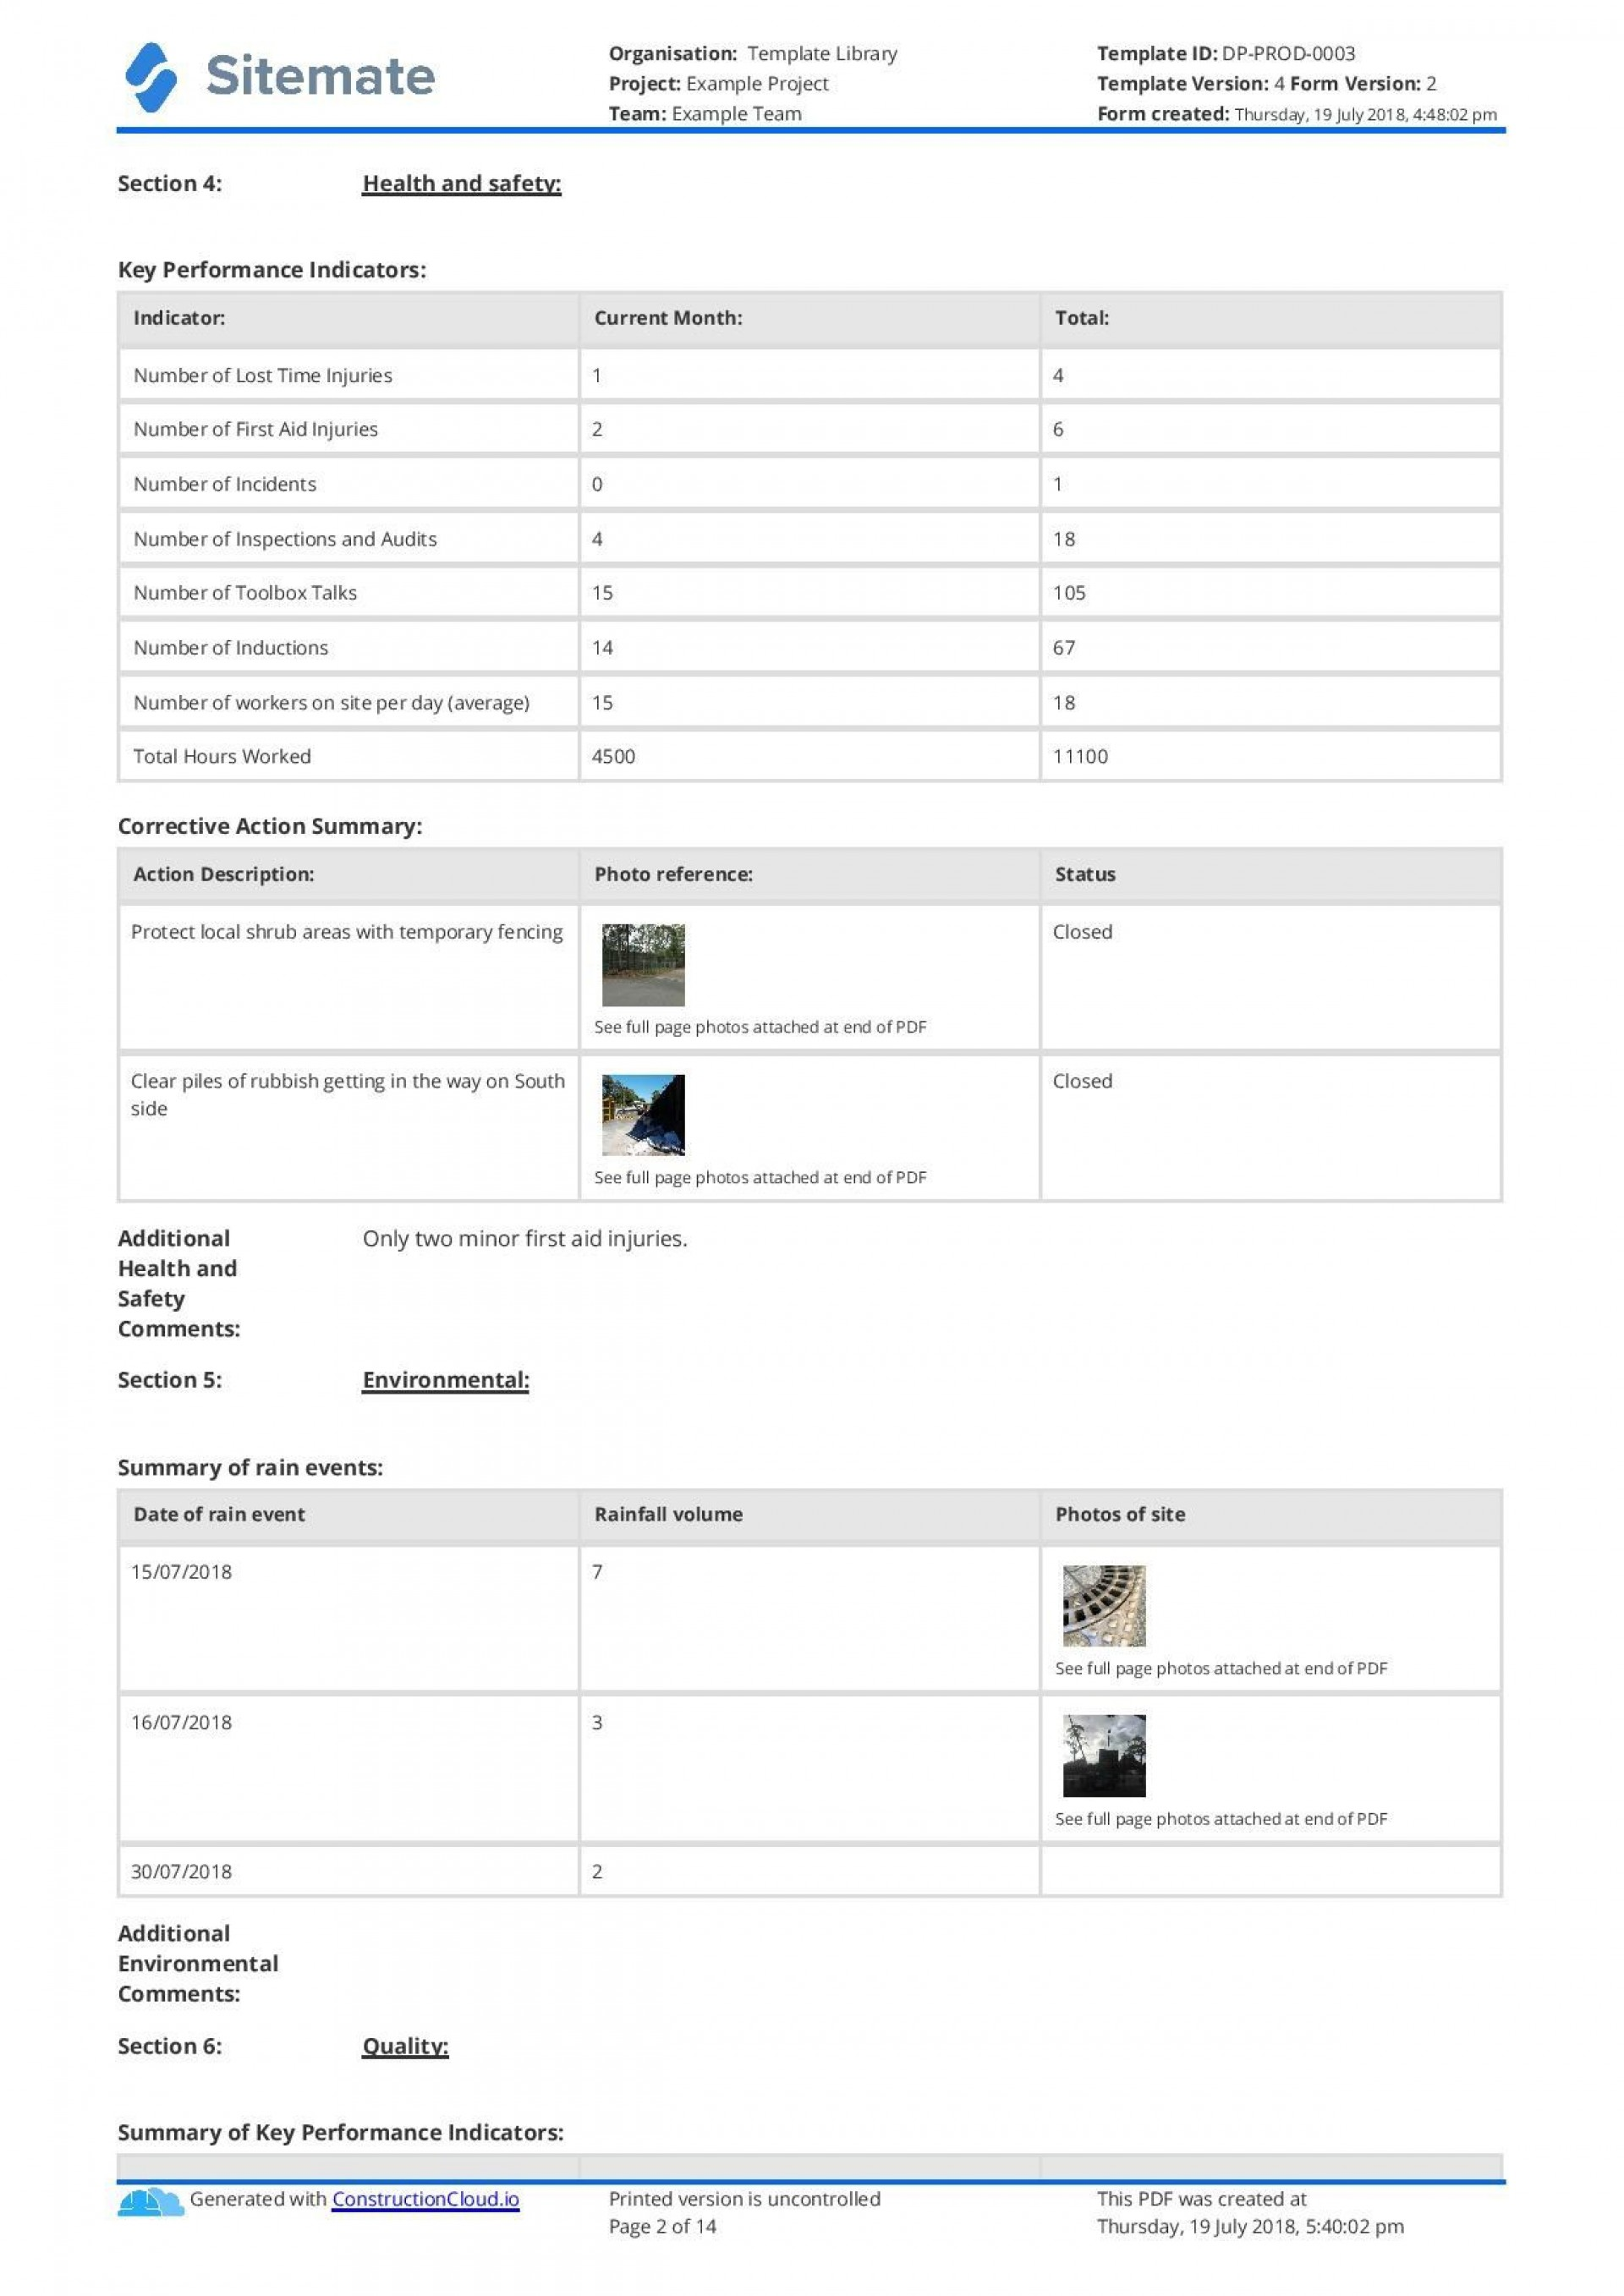 004 Awful Project Management Monthly Progres Report Template Highest Quality 1920